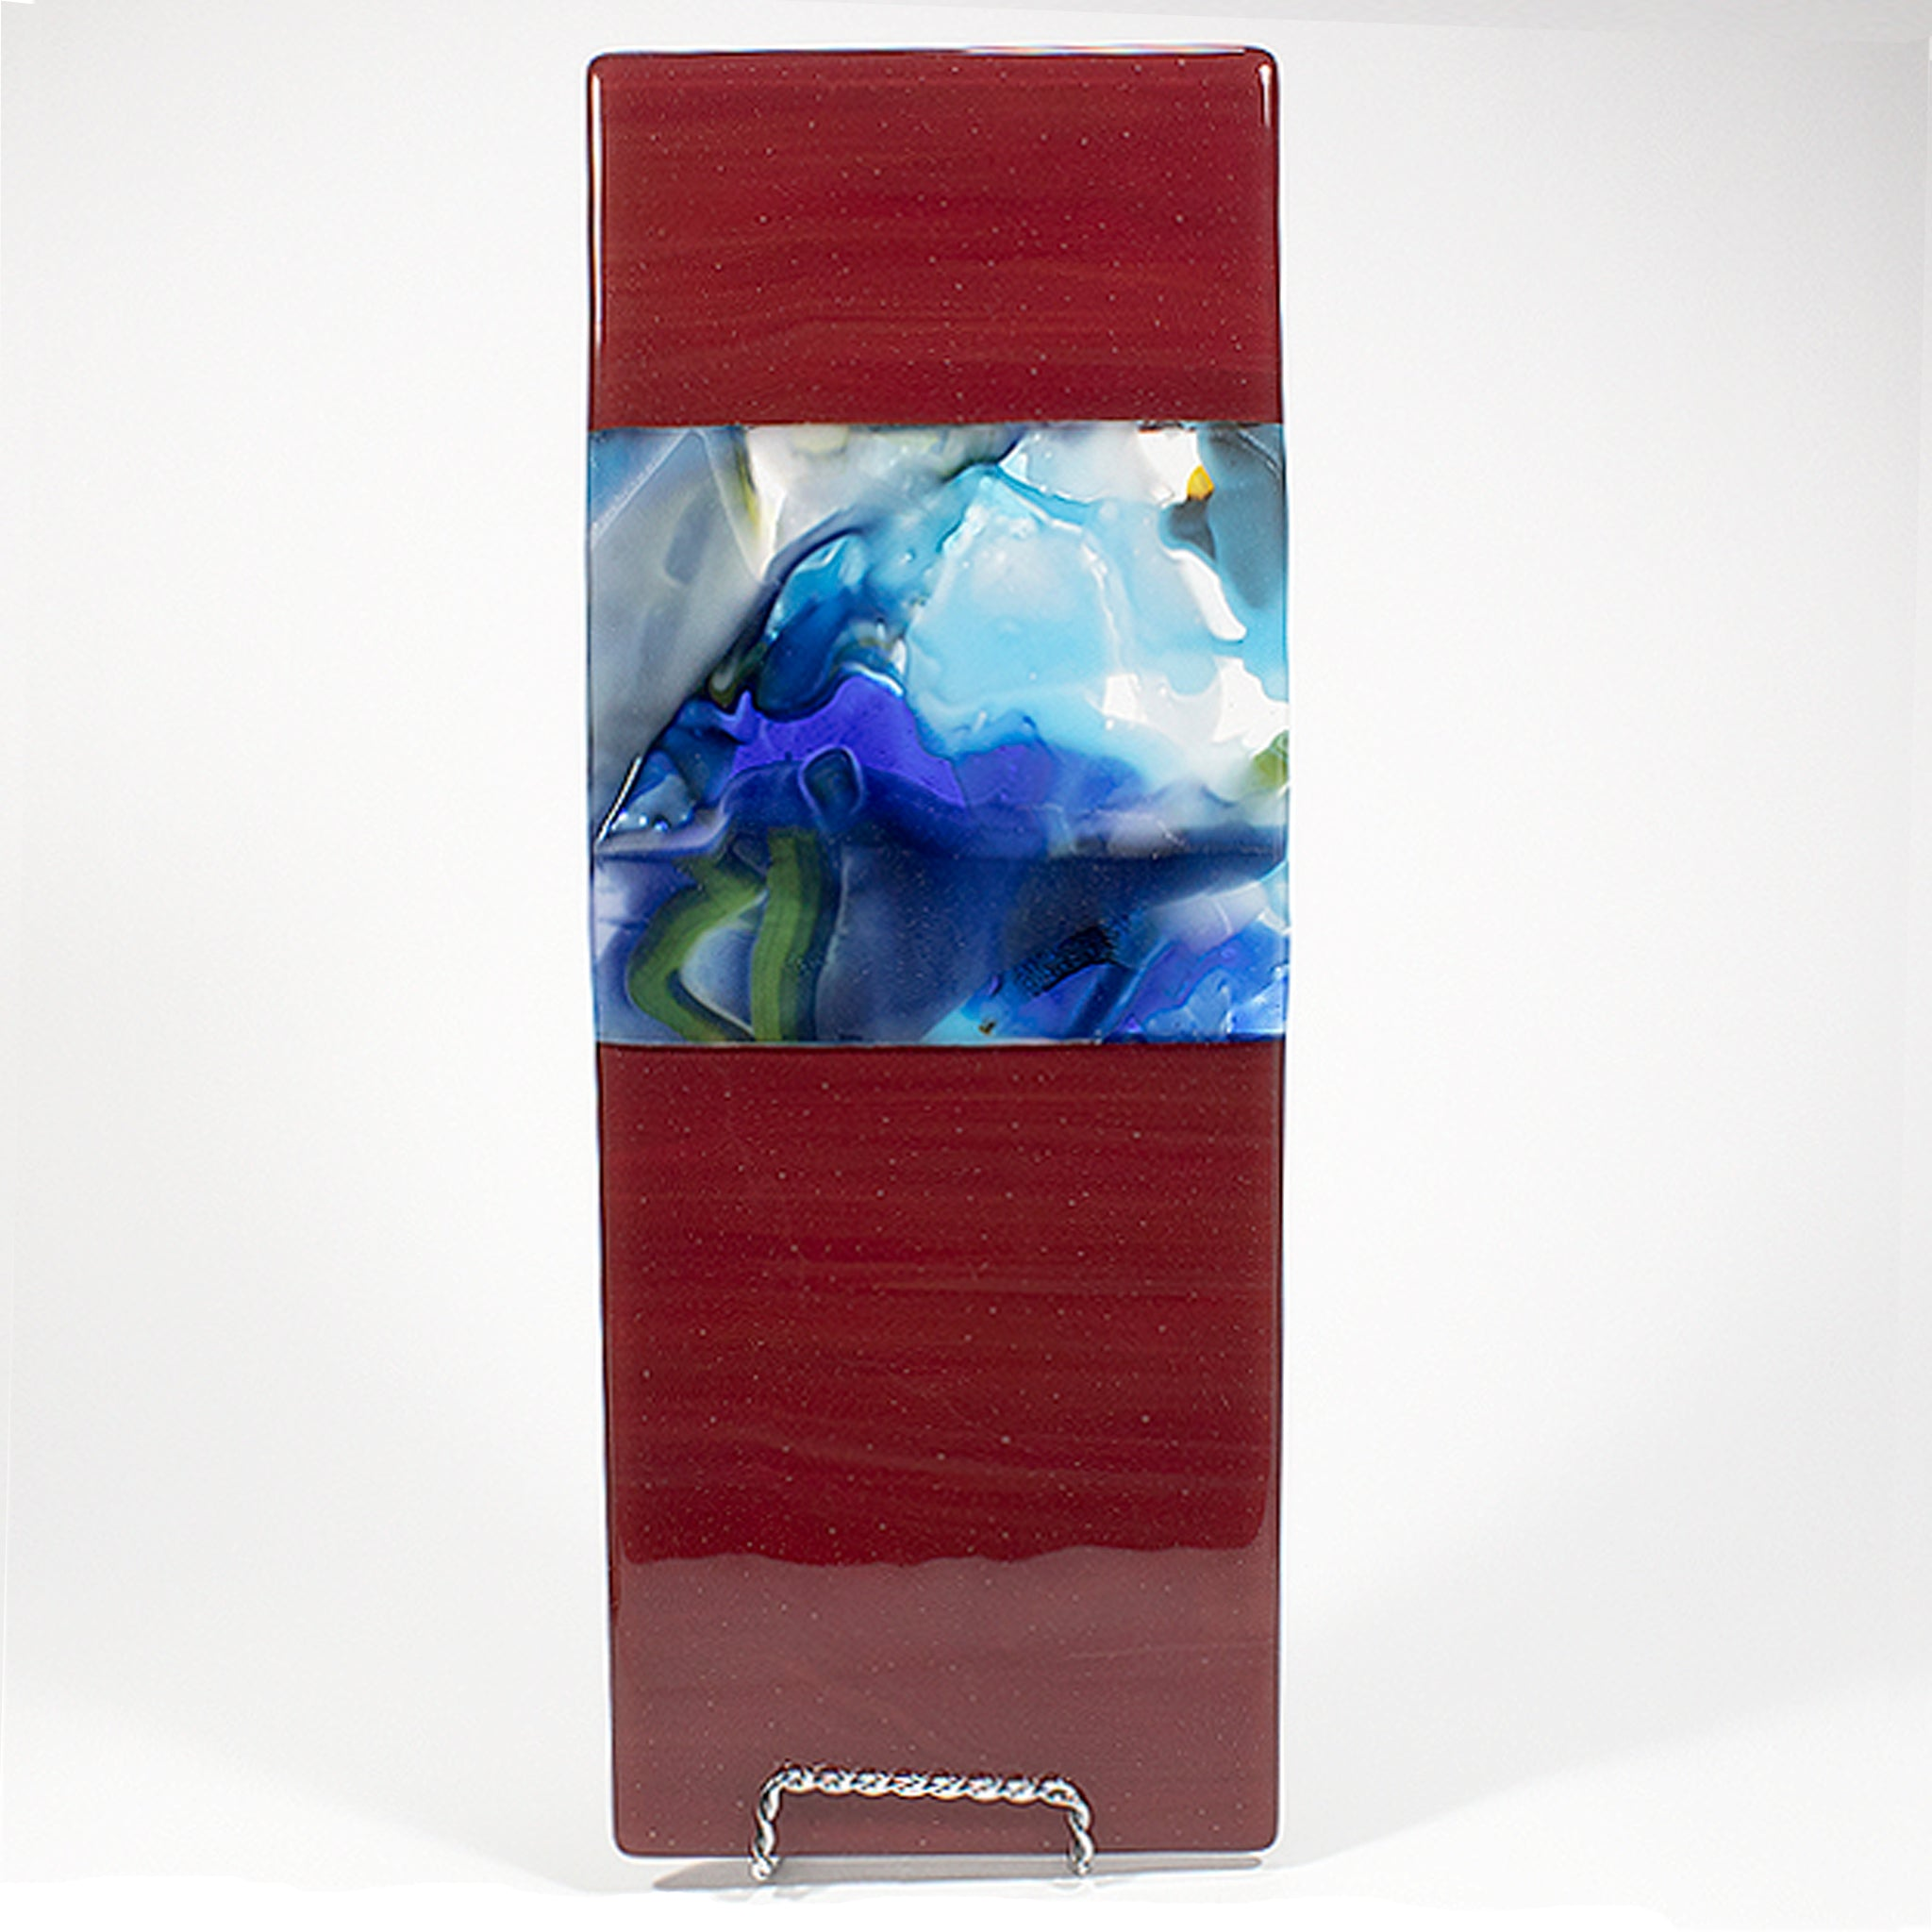 GP007-Single Wall Panel Deep Red Opal with Blue-toned Ringmelt section